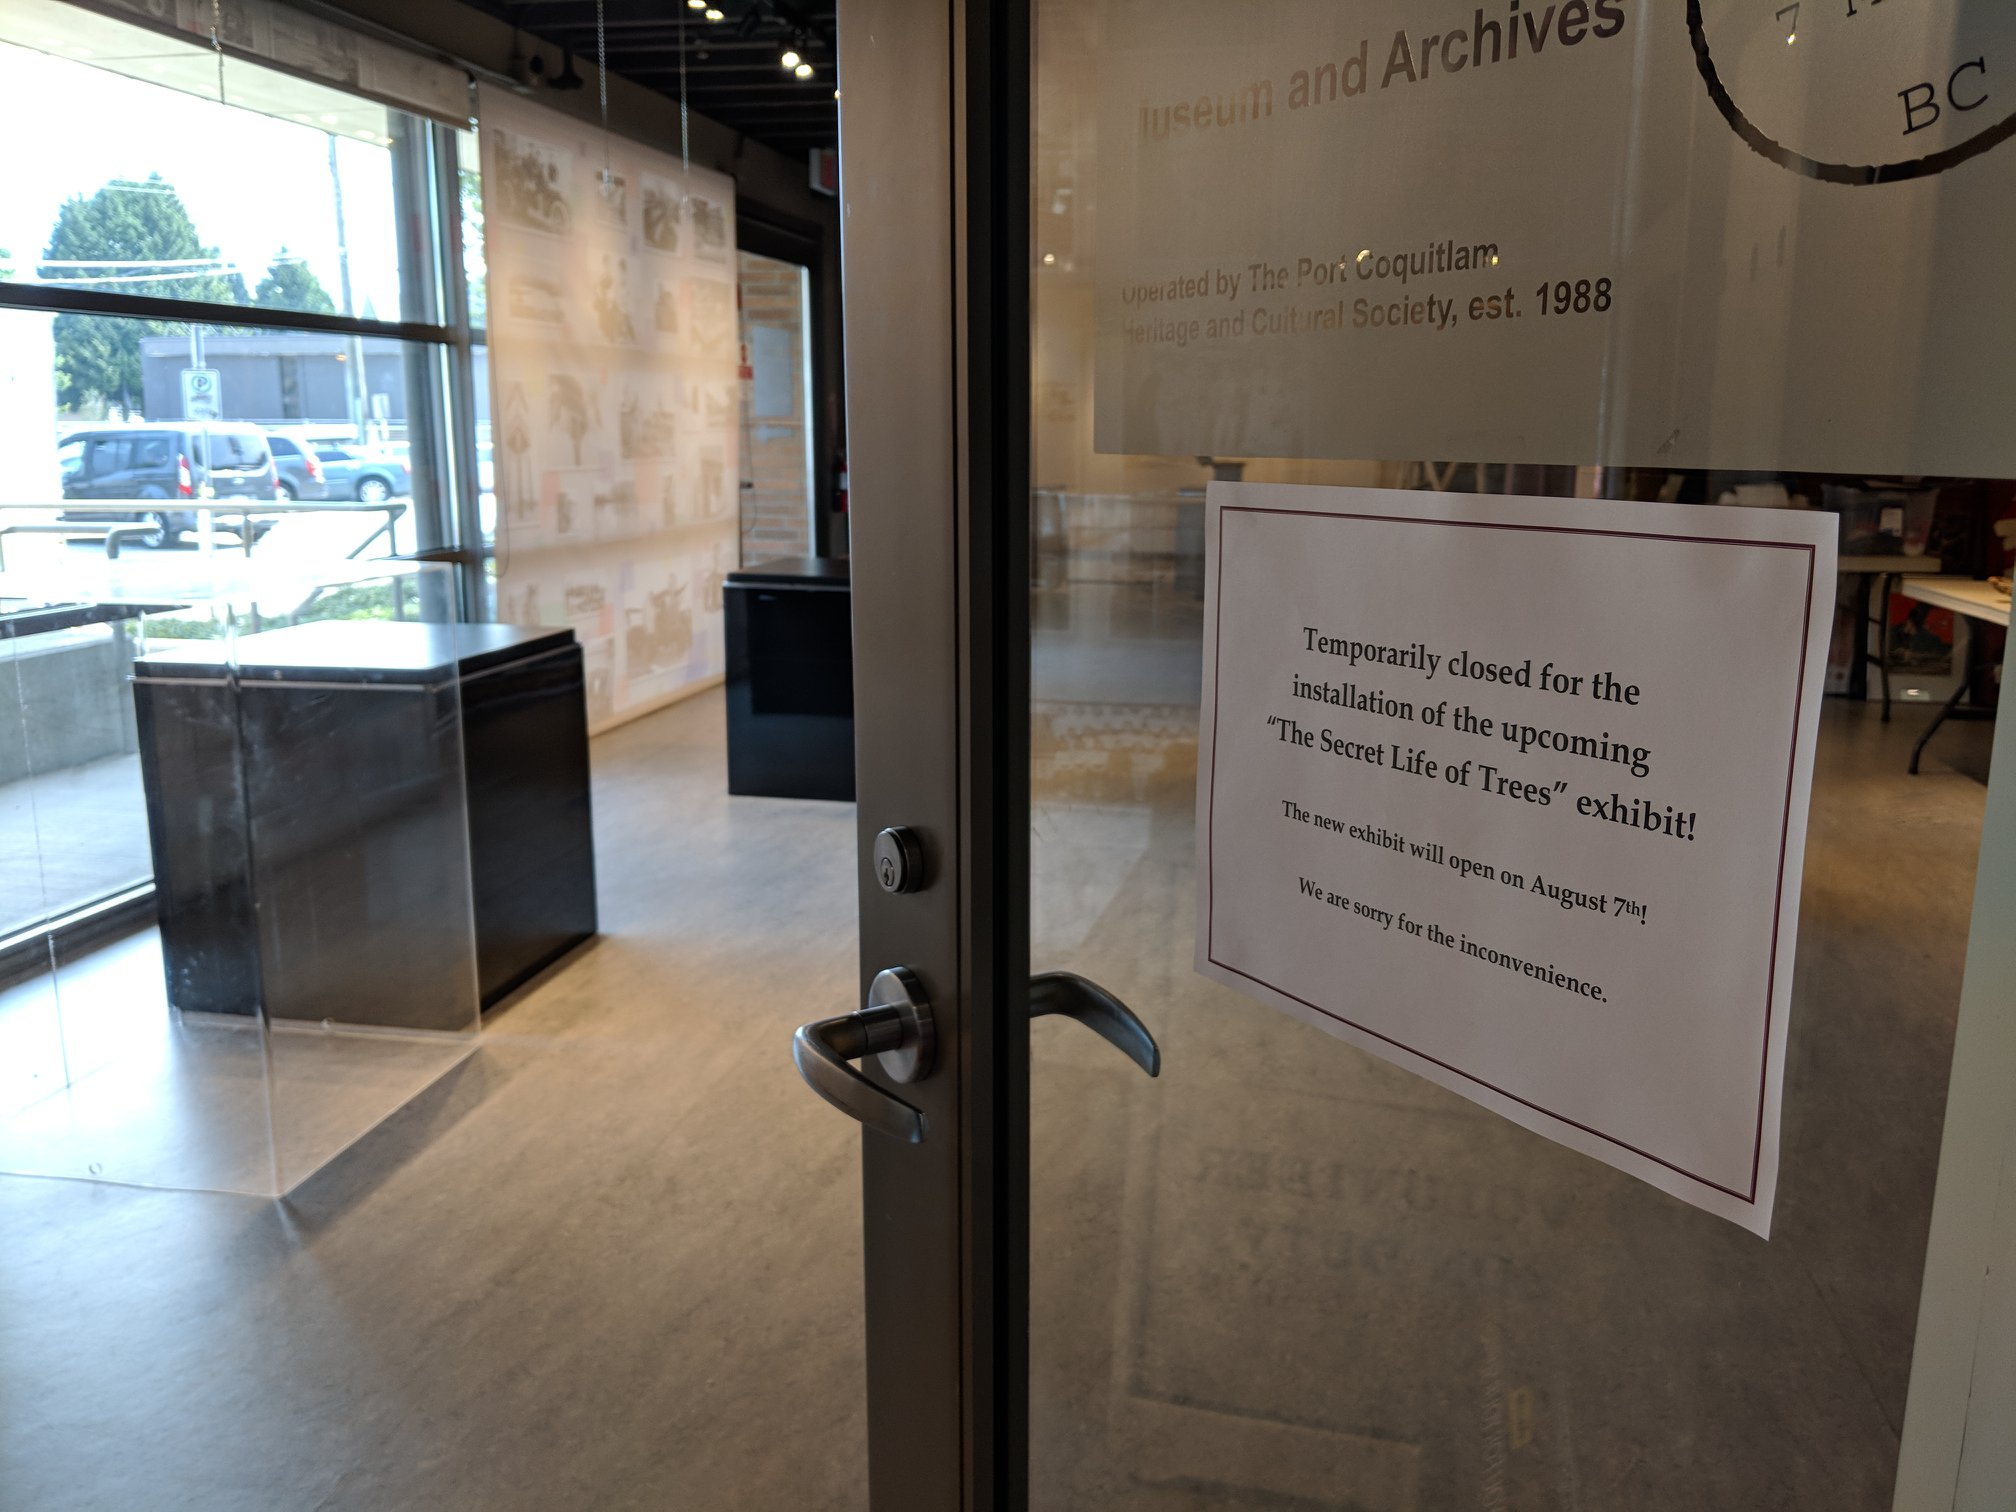 Museum Closed Until August 7th